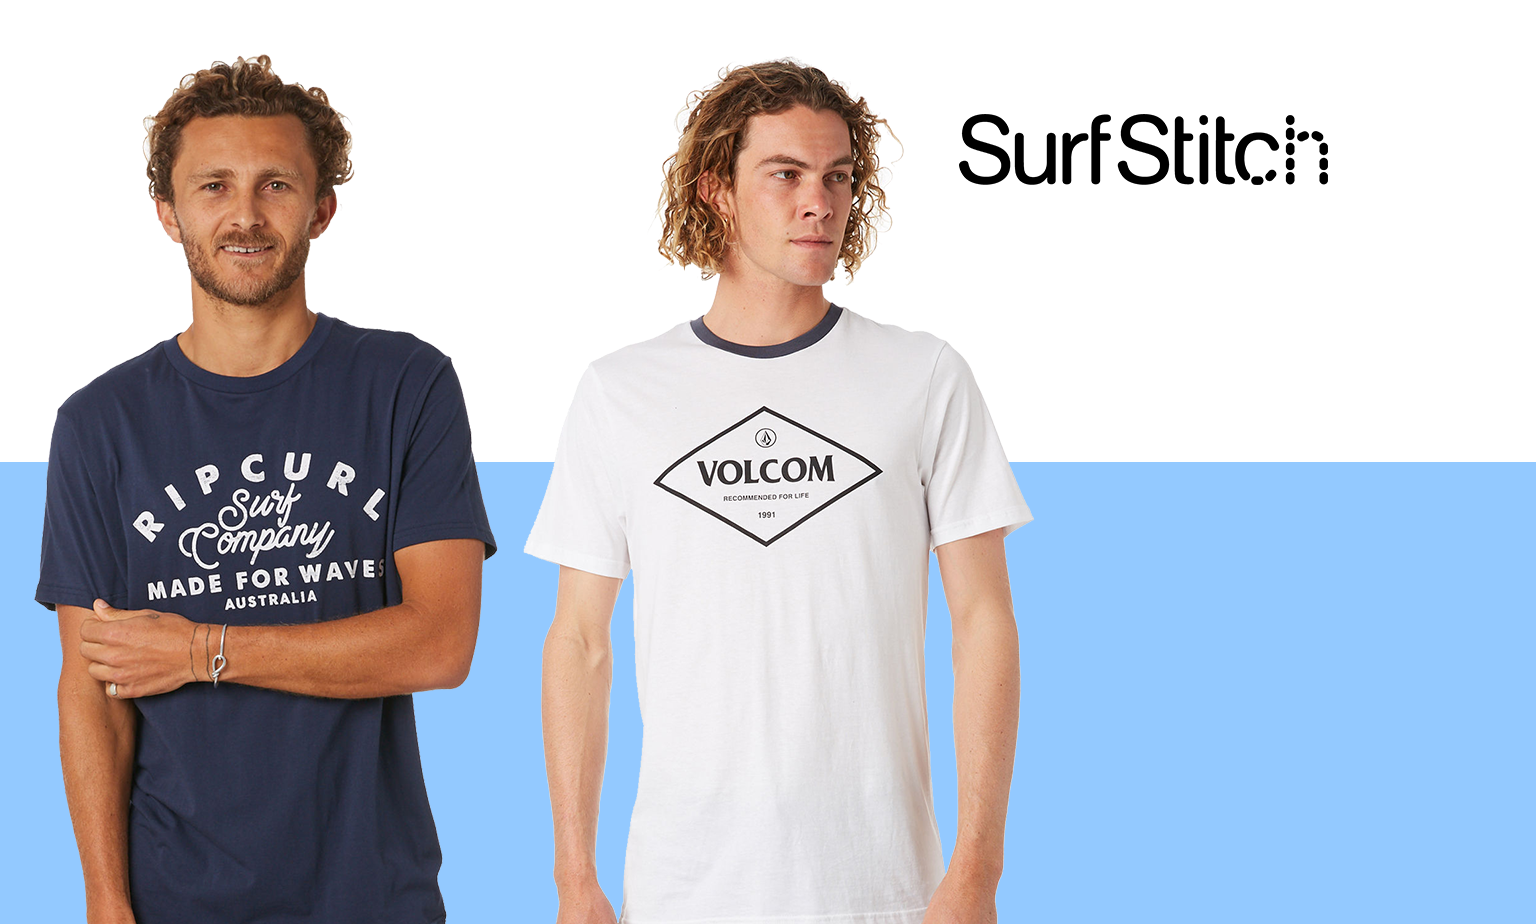 20% off at SurfStitch*